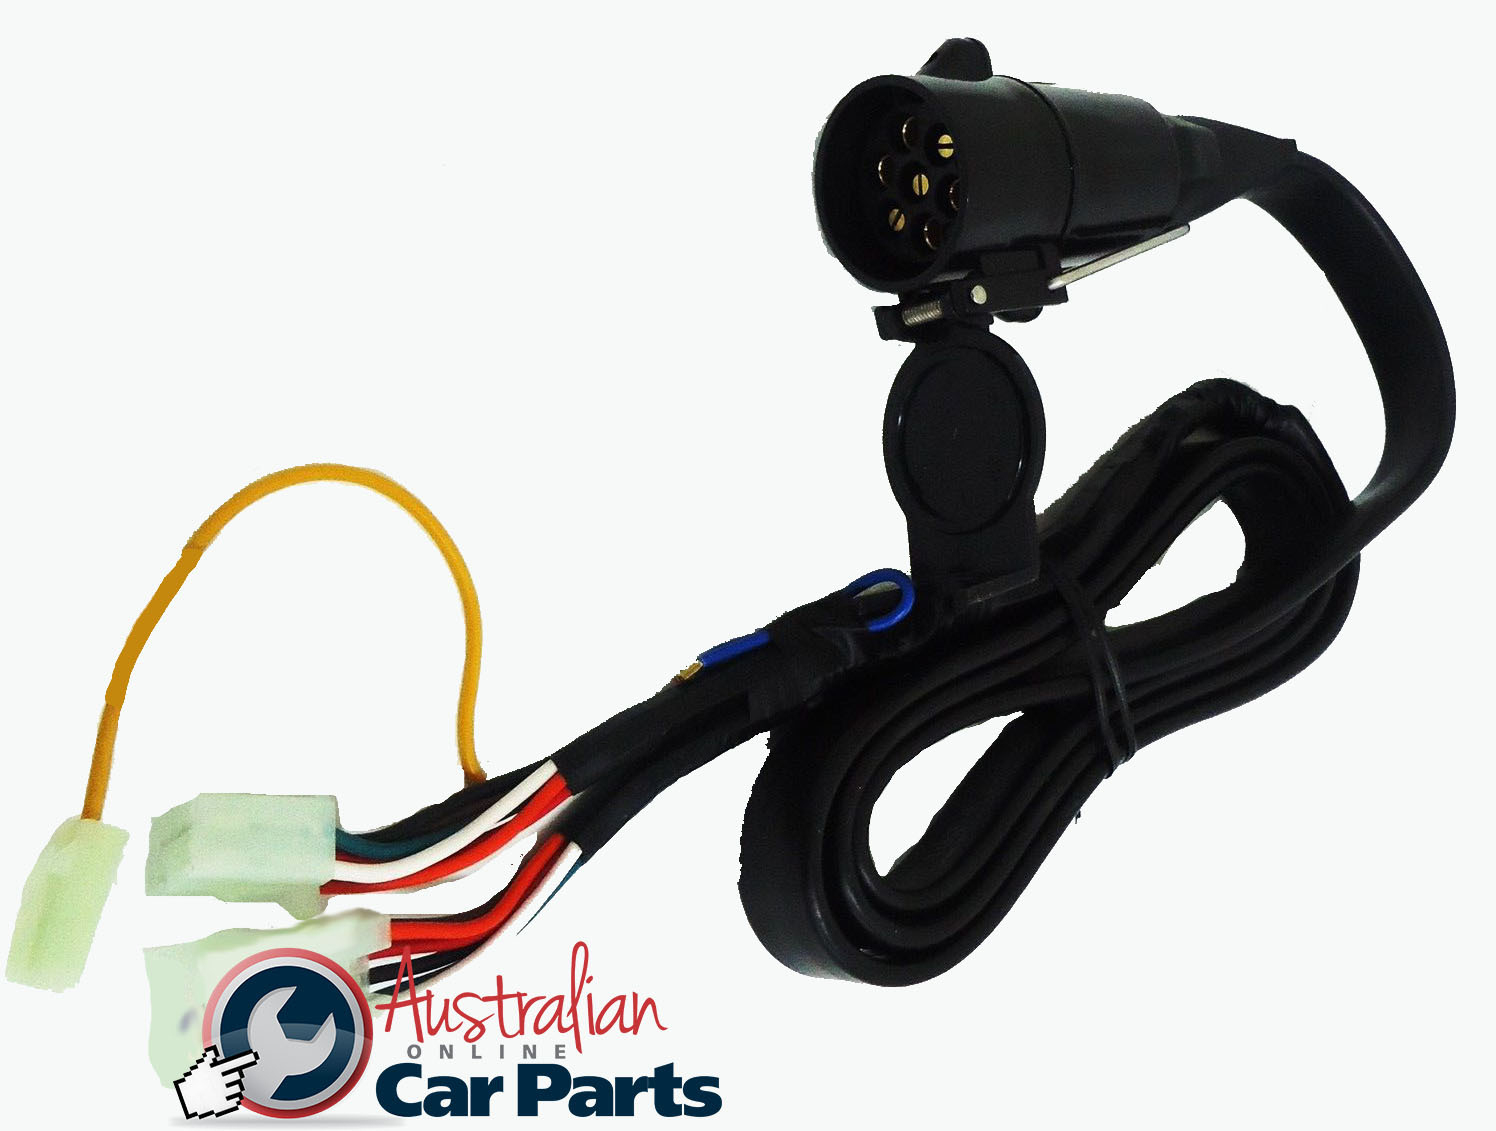 Trailer Wiring Harness Suitable For Holden Commodore Vt Vx Vy Vz - Vt Commodore Trailer Wiring Diagram